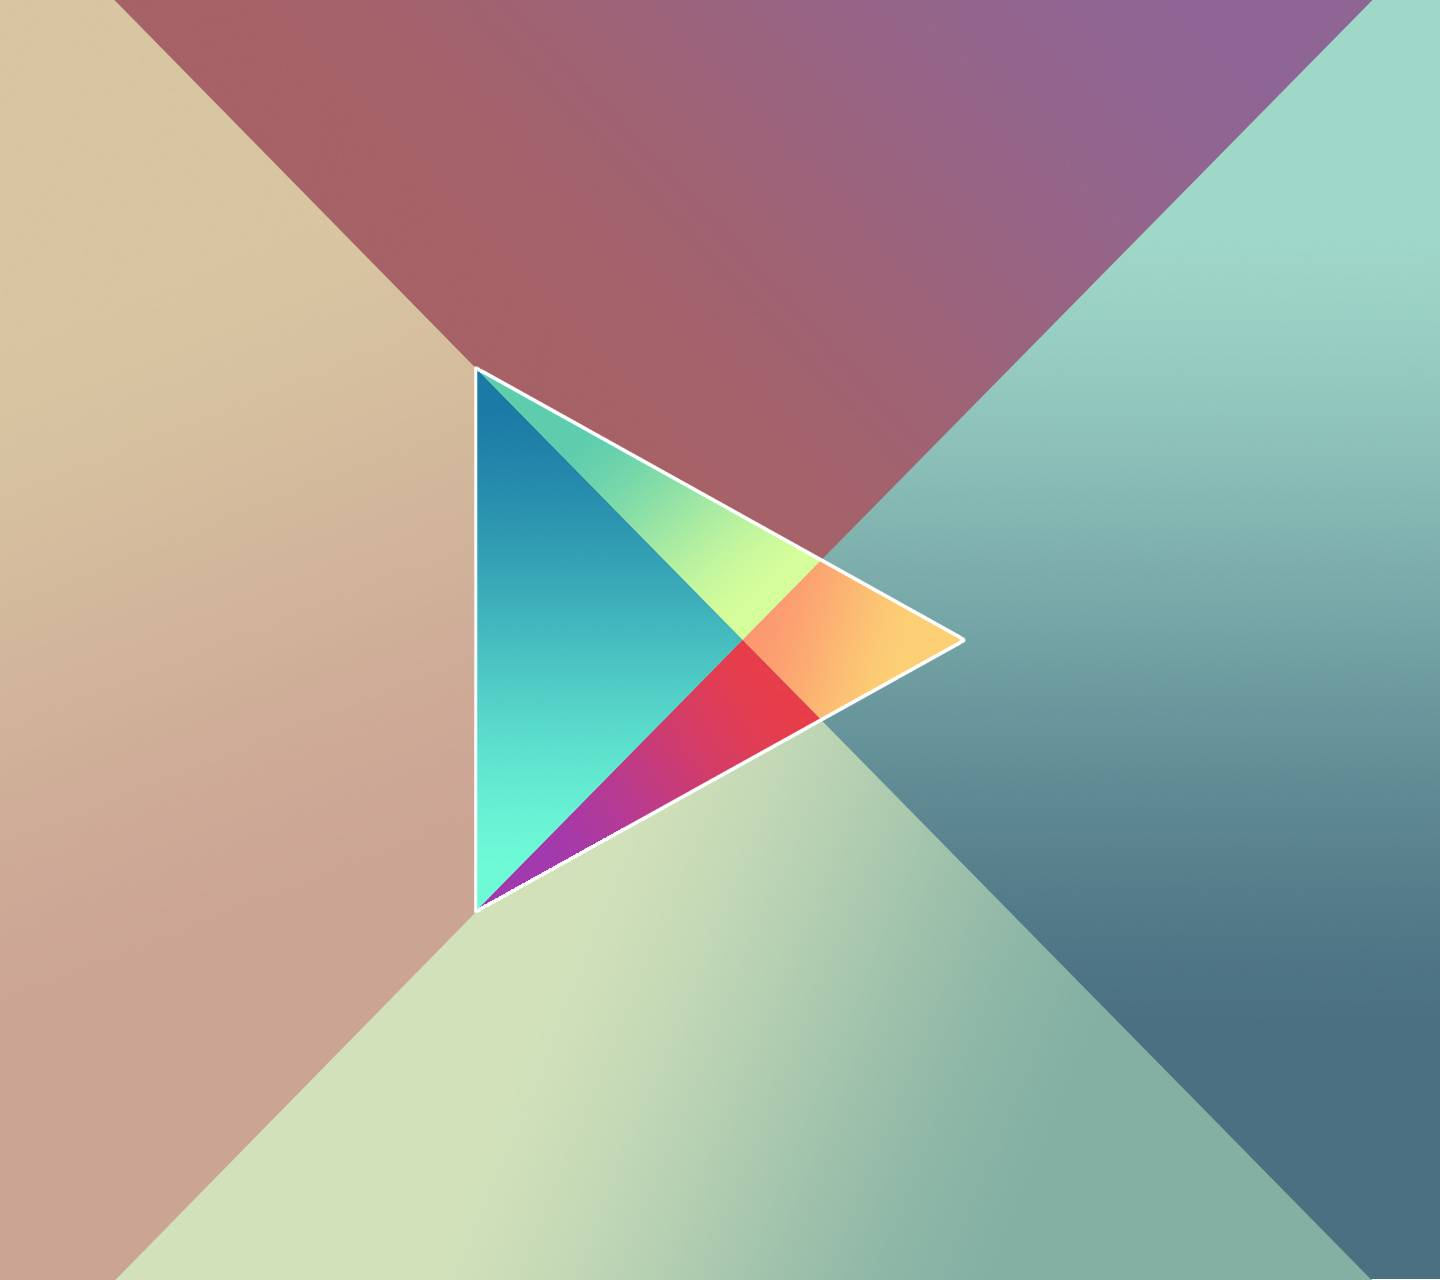 Google Play Store Wallpaper By Jackmafu 3e Free On Zedge